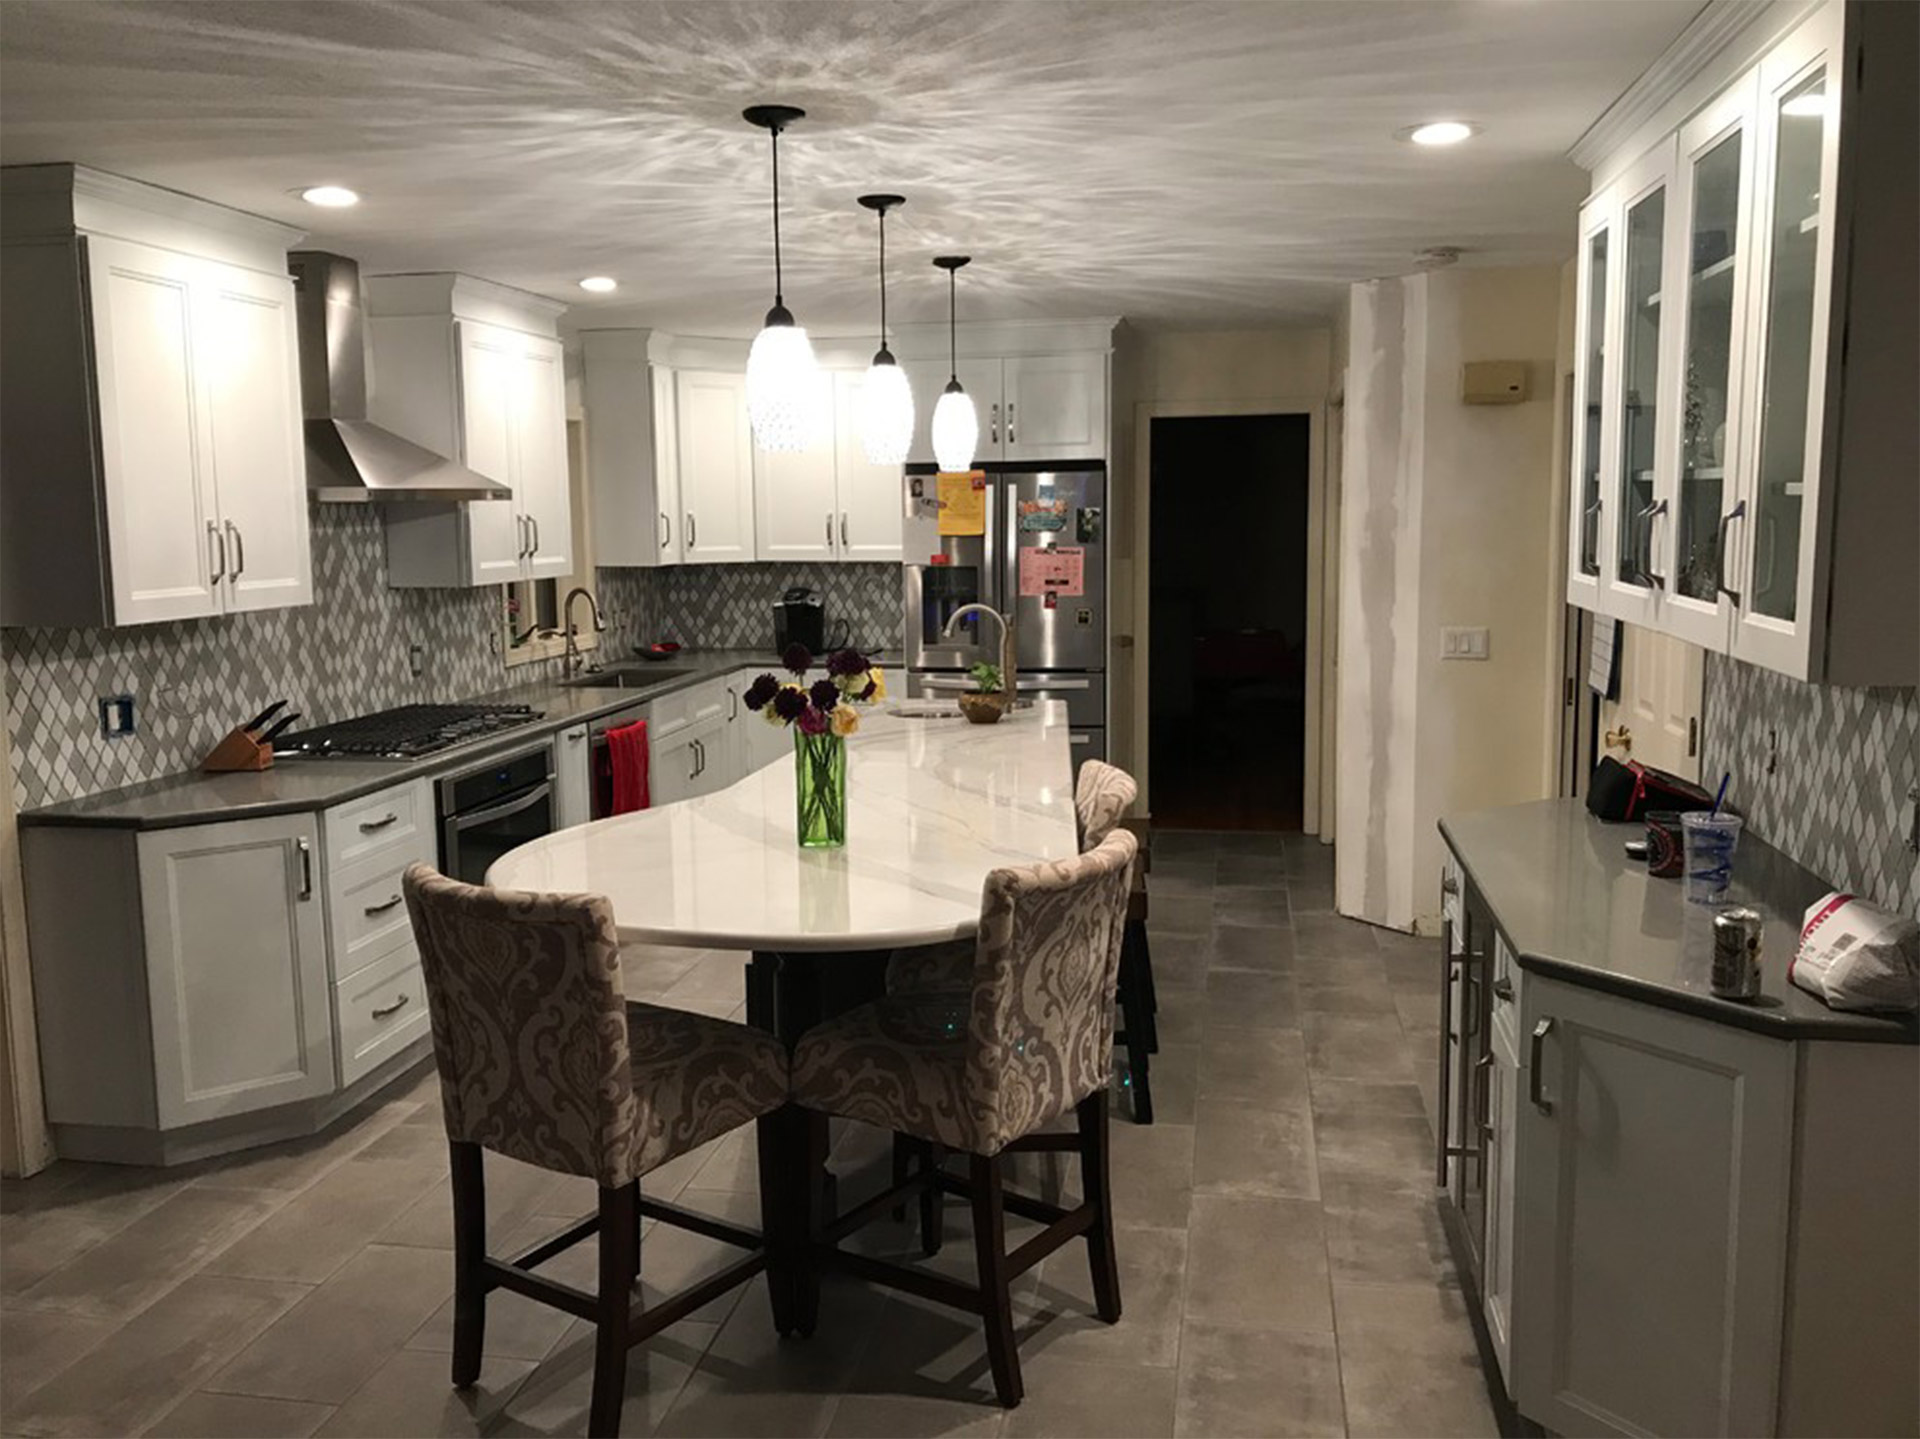 modern kitchen with Cubitec cabinets and quartz countertop